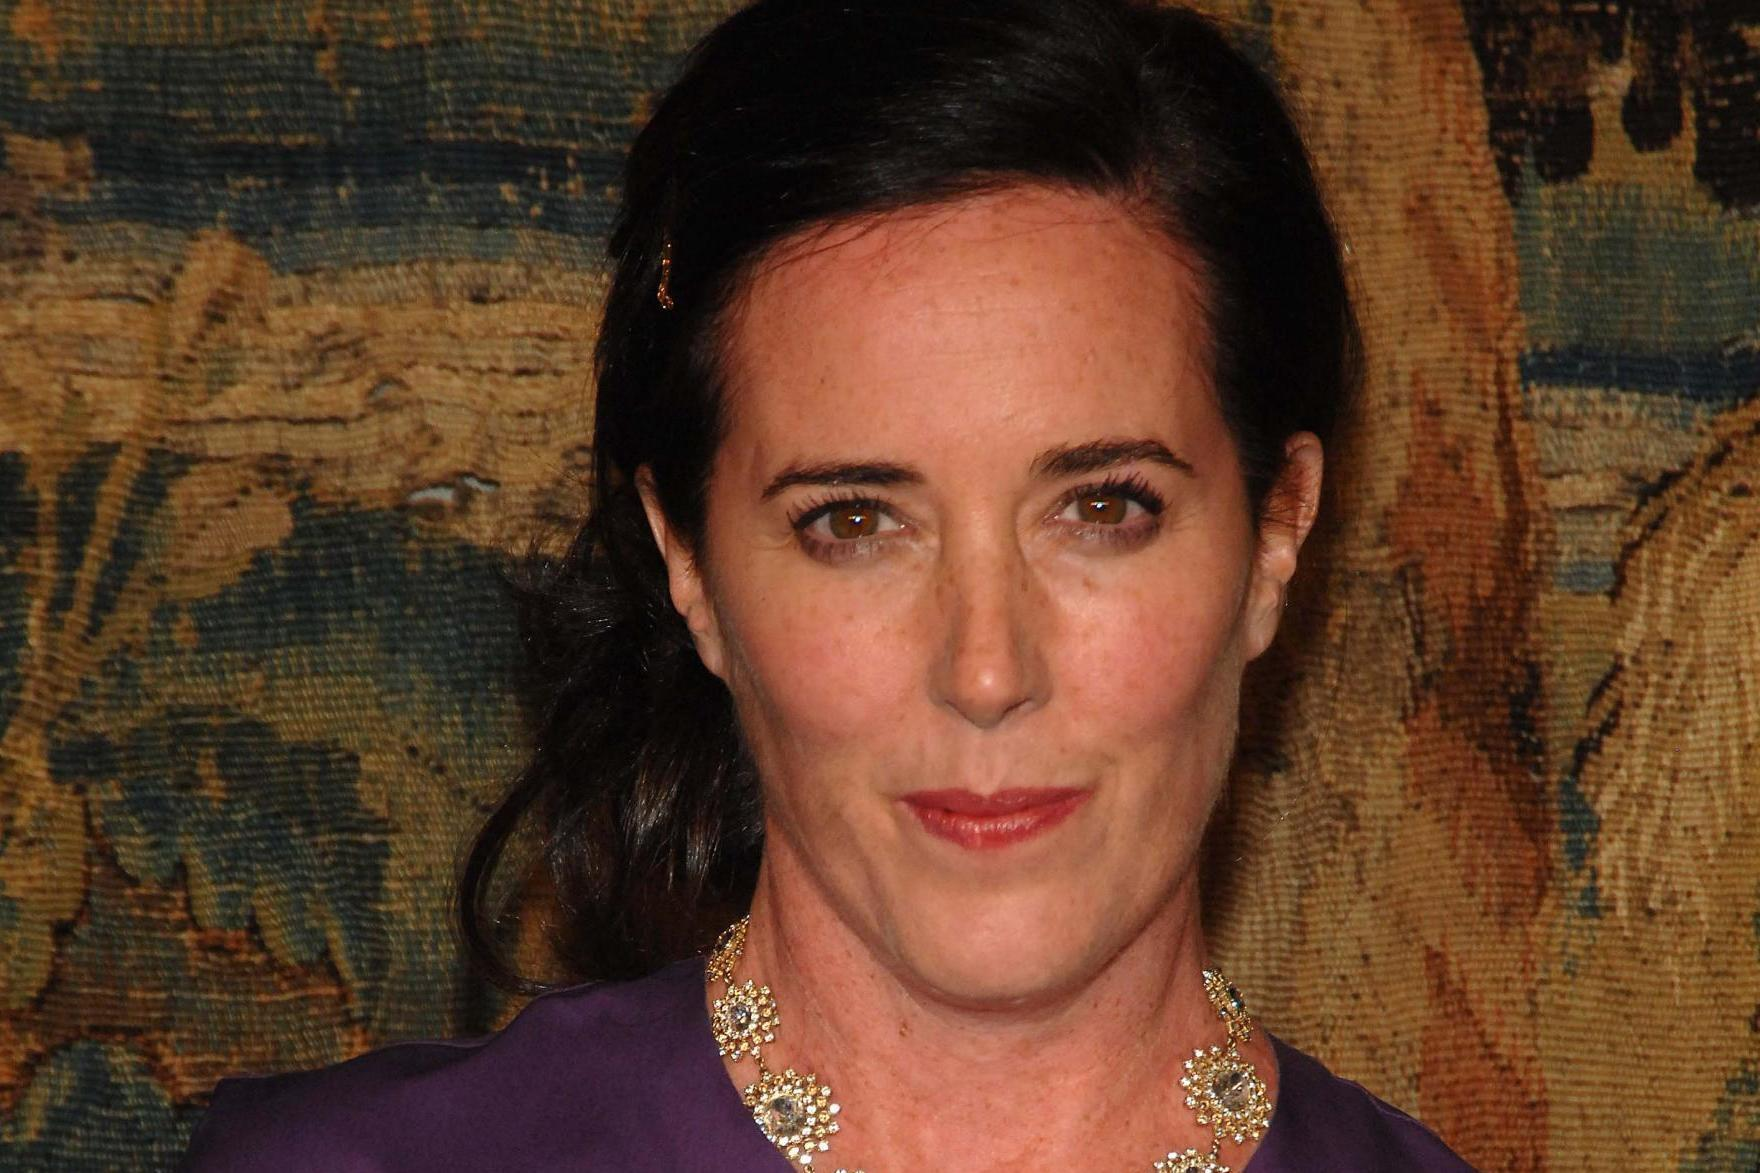 Kate Spade death: Tributes to iconic fashion designer pour in after police confirm her suicide